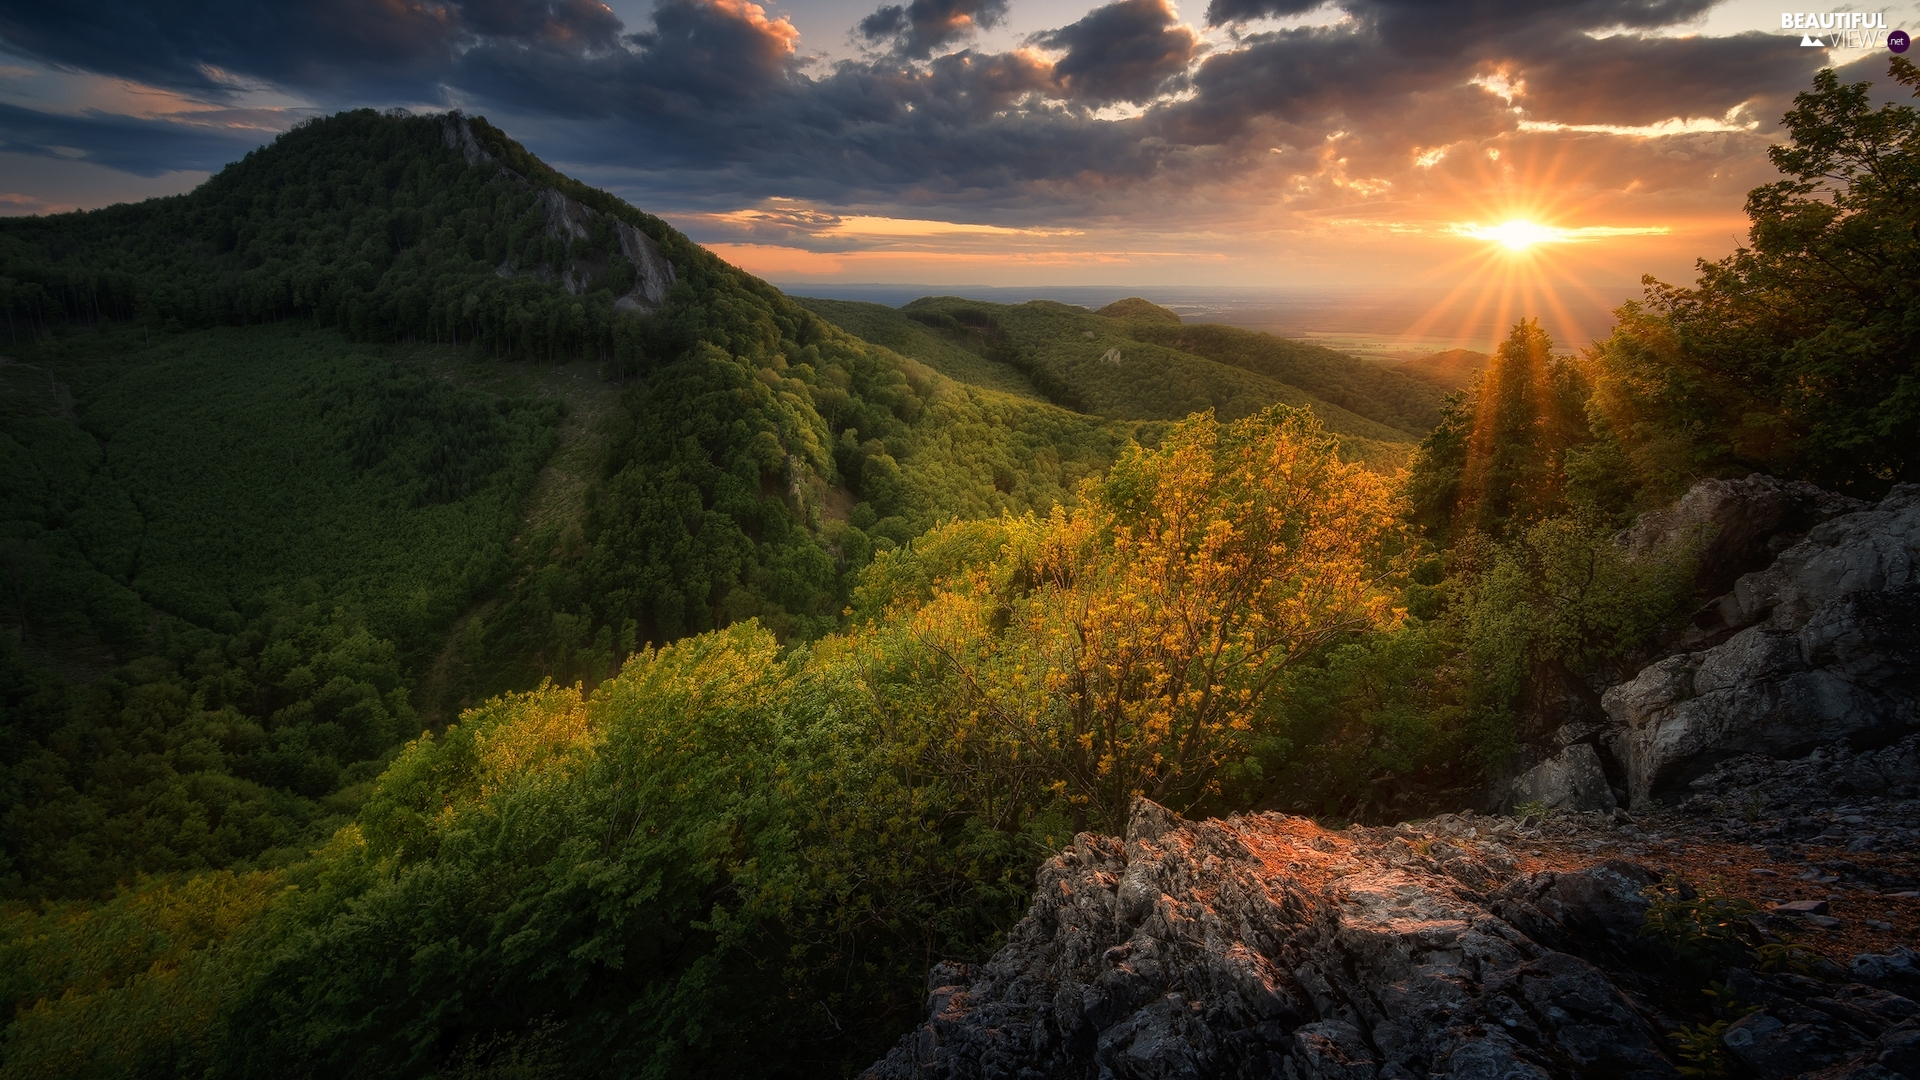 rocks, Sunrise, viewes, clouds, Mountains, trees, VEGETATION